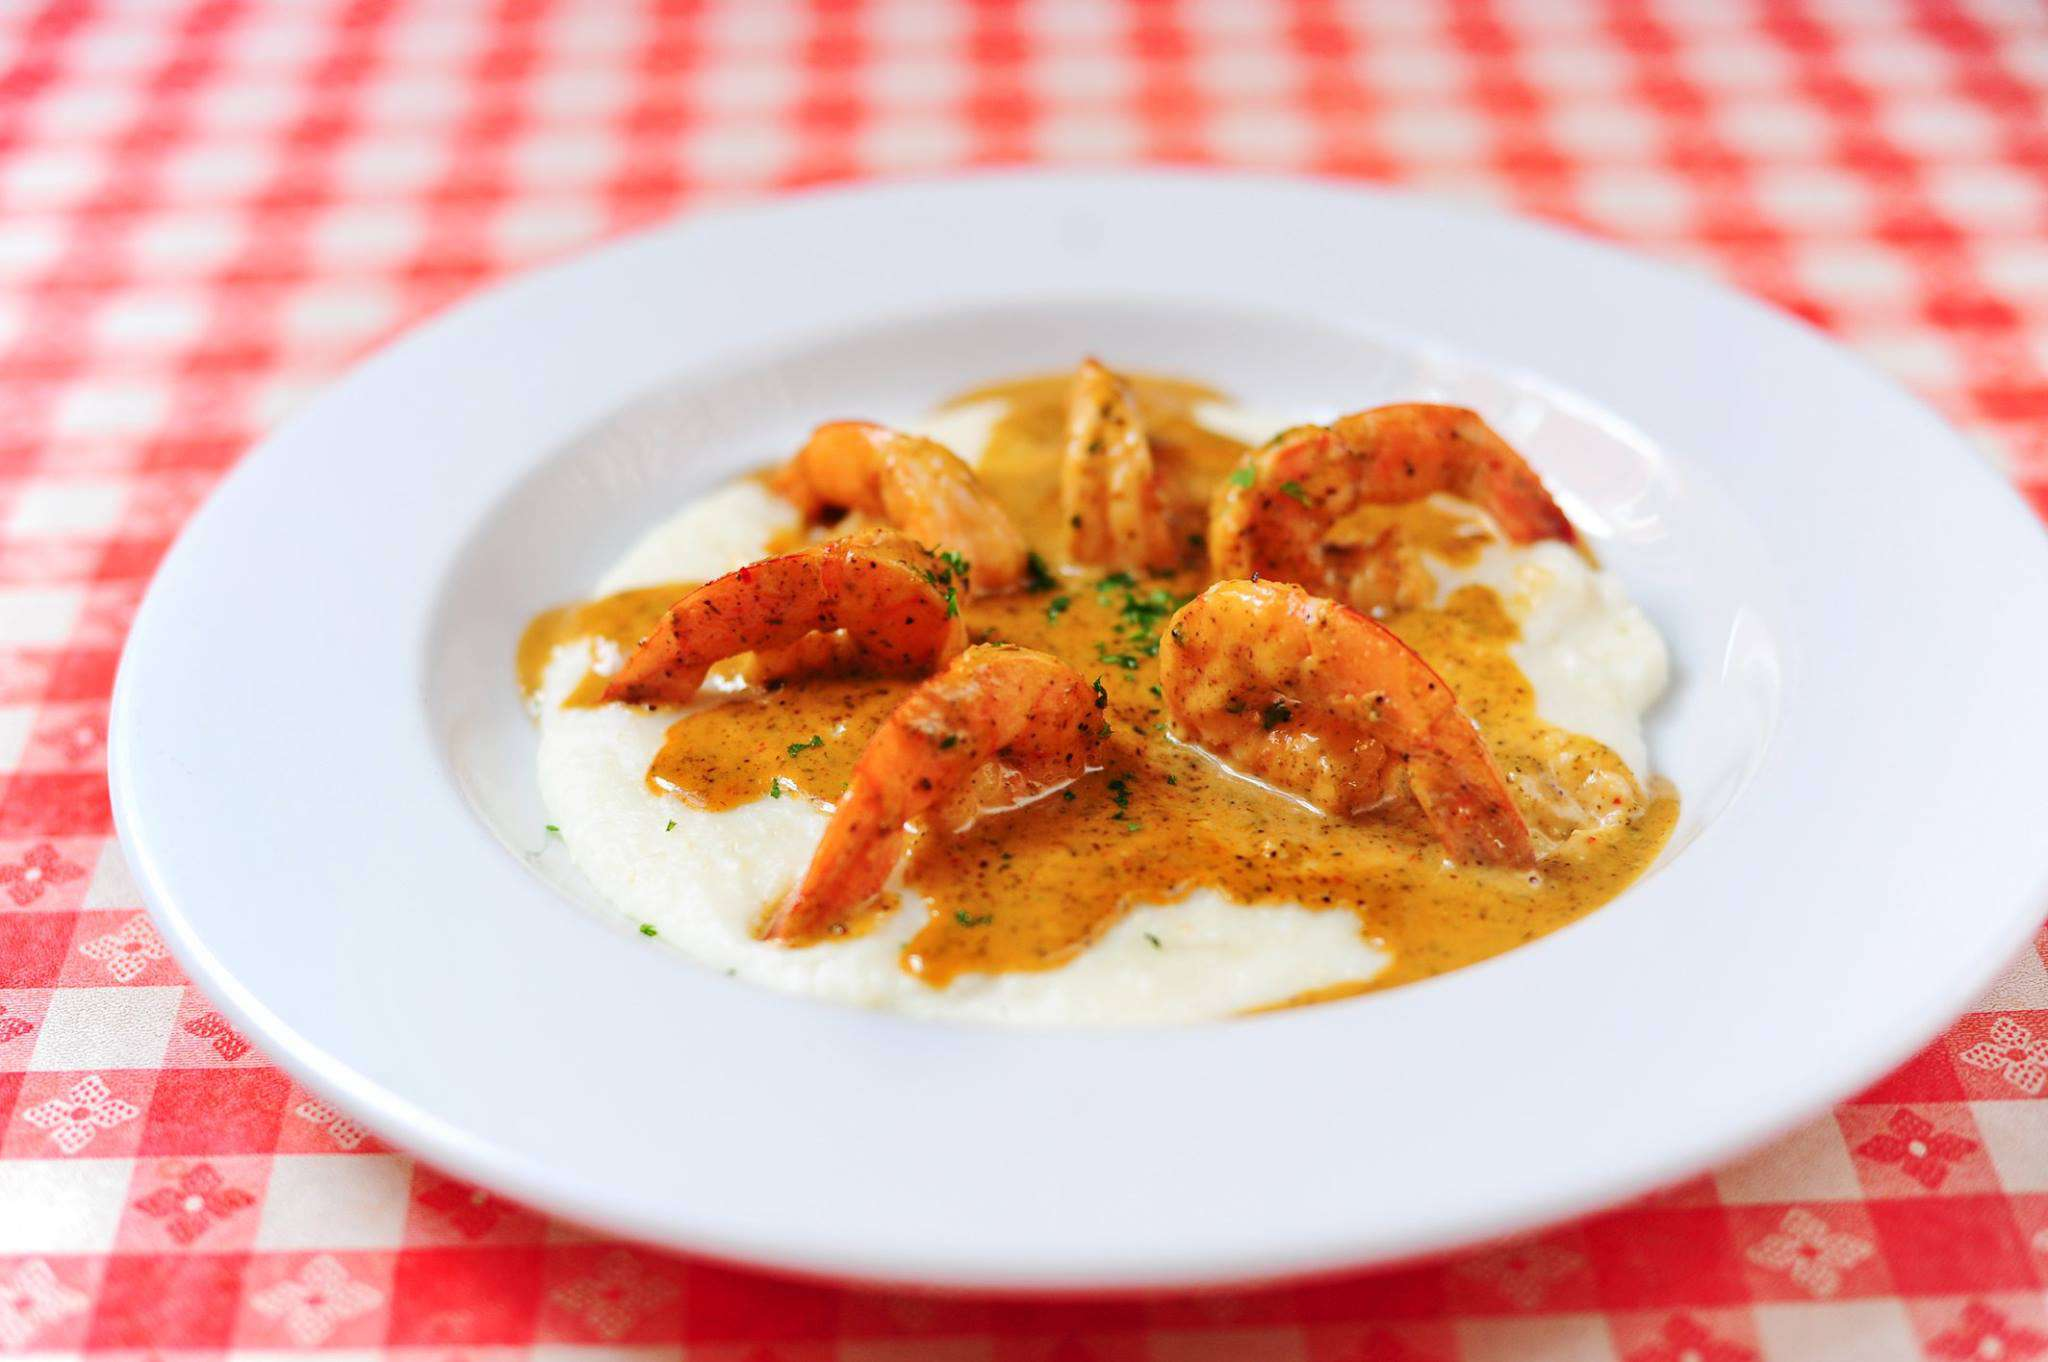 Six shrimp placed in a circle on top of grits covered in a creole sauce